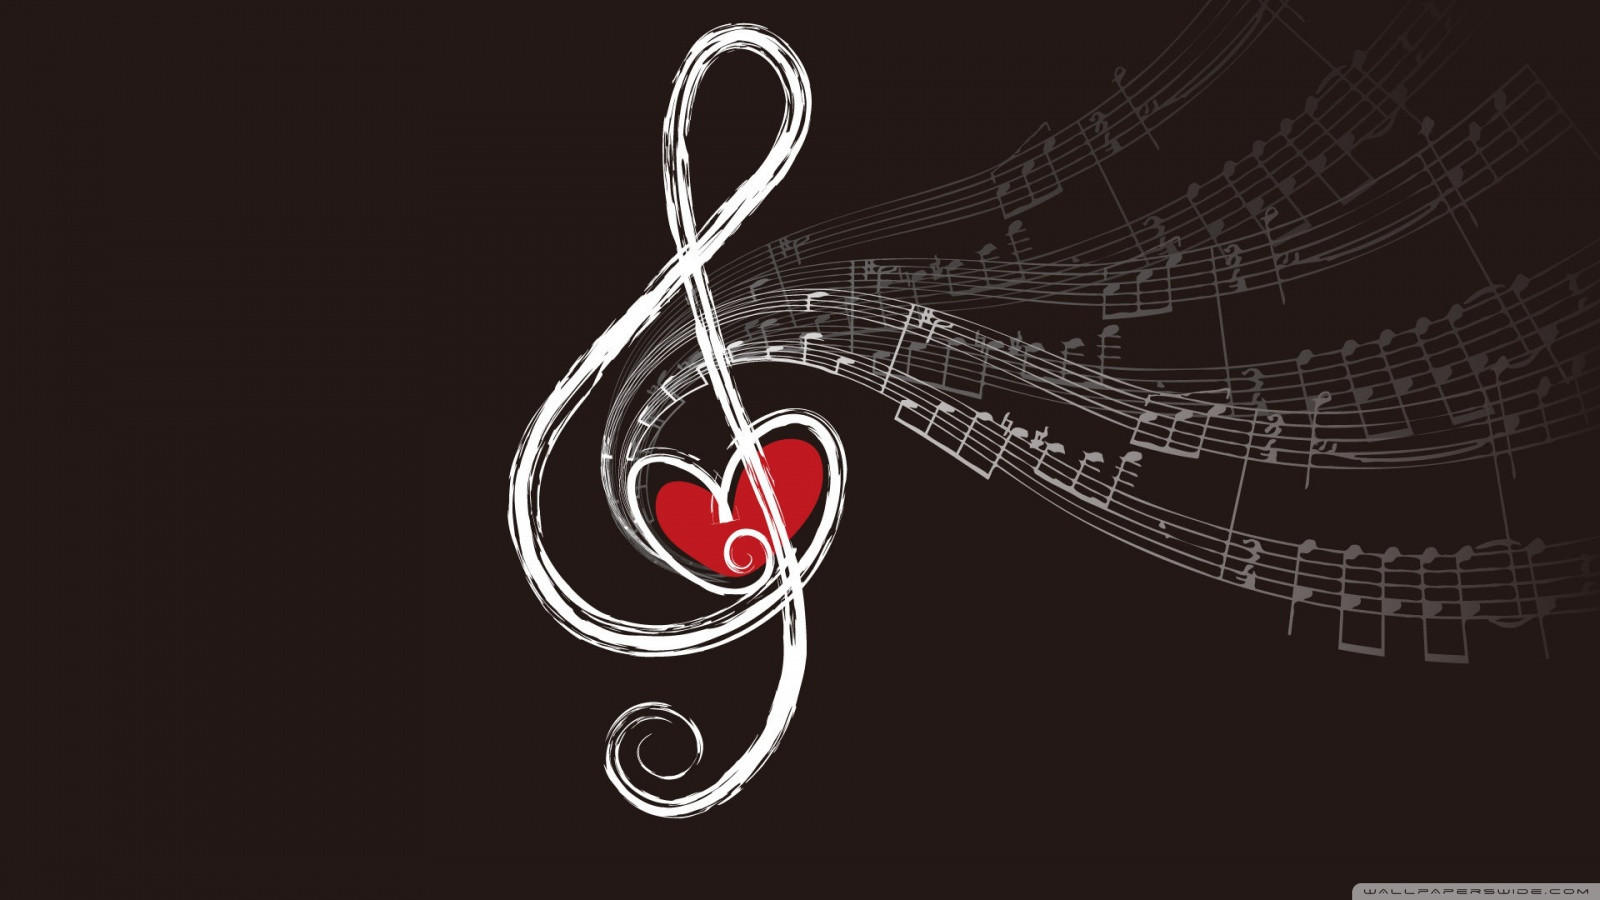 Music Hd Pic Musical Notes 4k Hd Desktop Wallpaper For 4k Ultra Hd Tv Wide